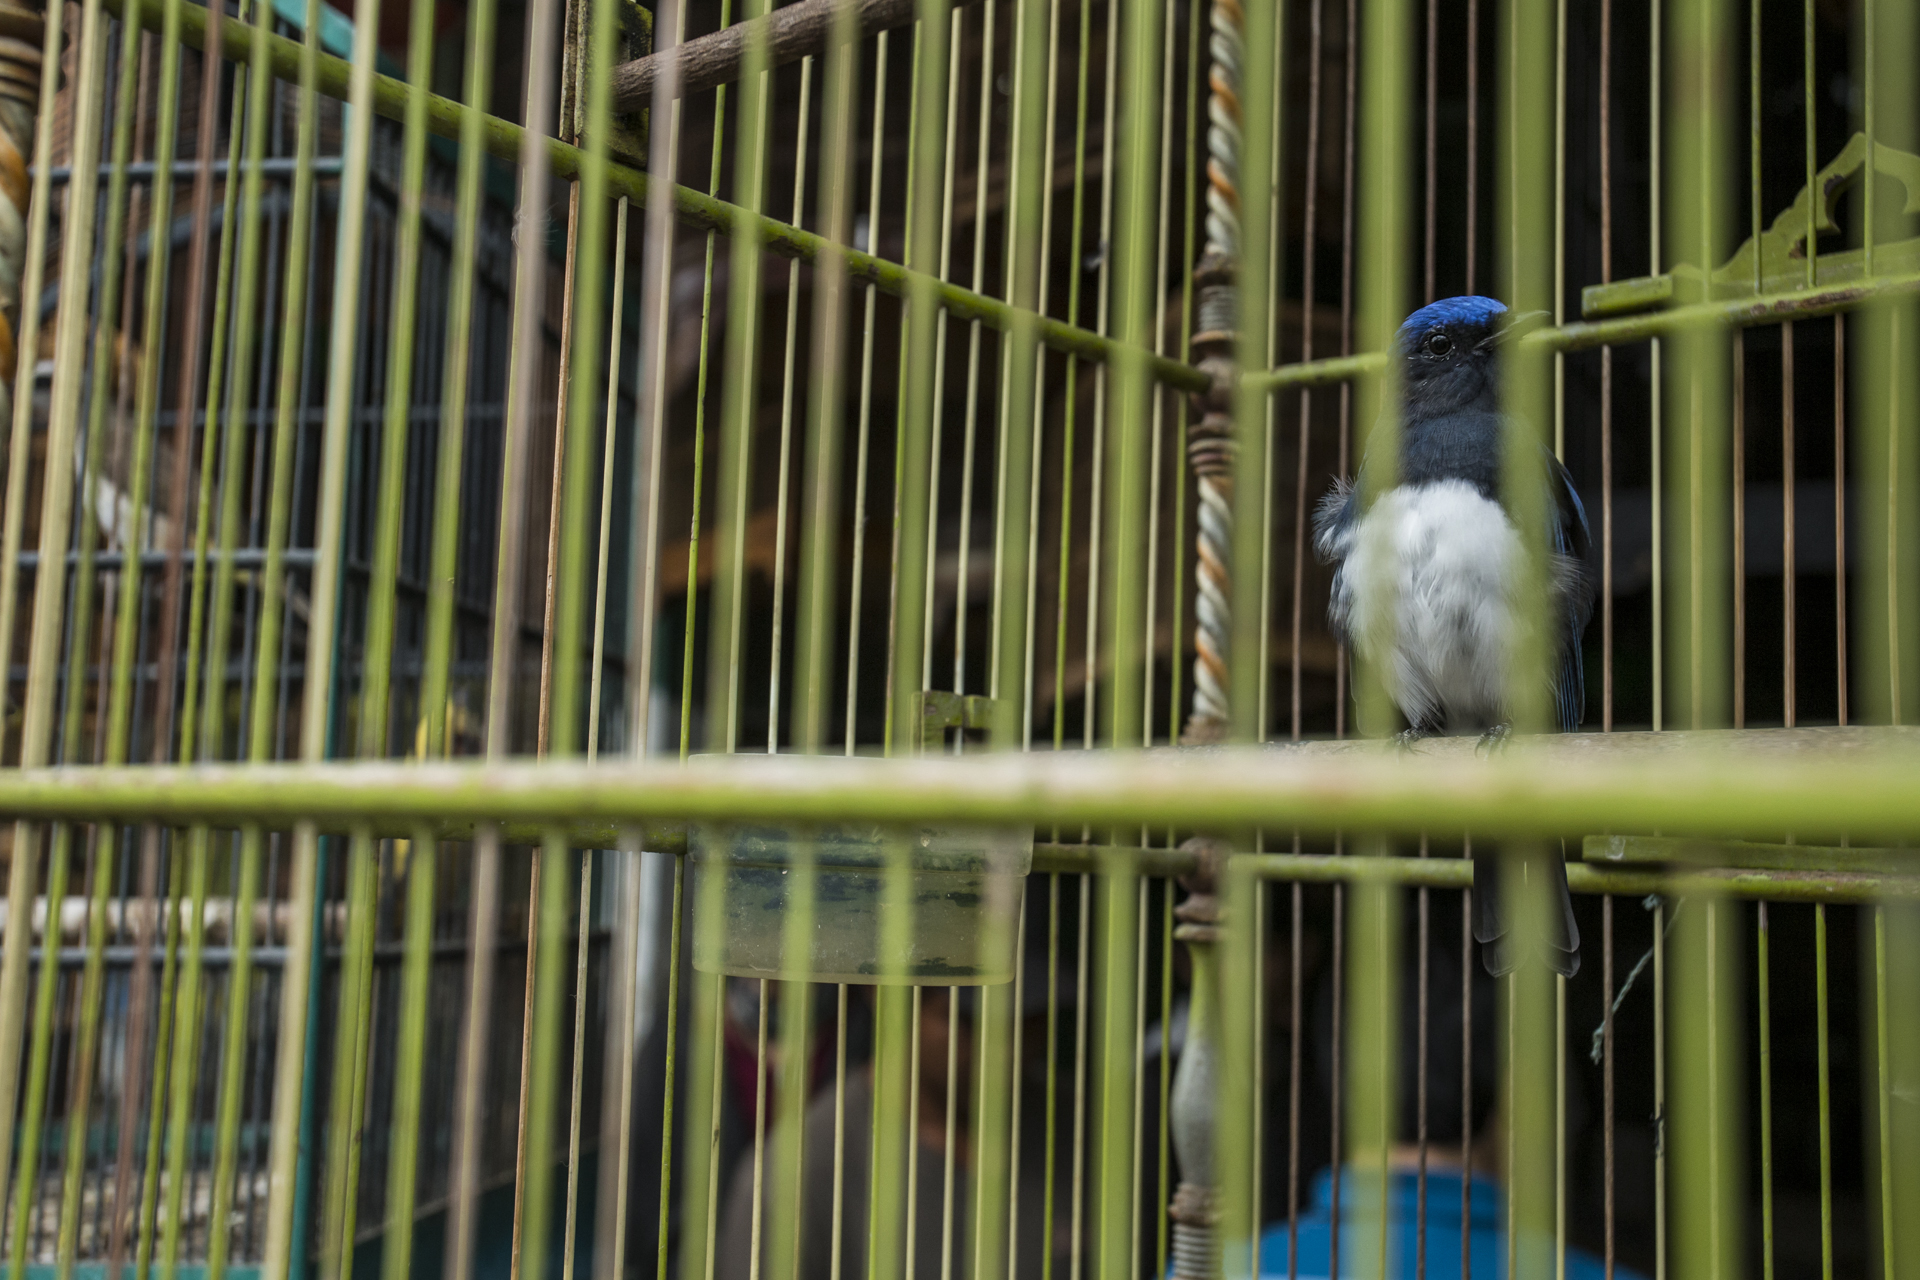 No bird is safe, this Blue and White Flycatcher migrates from China and Korea to Indonesia but did not escape the poachers.